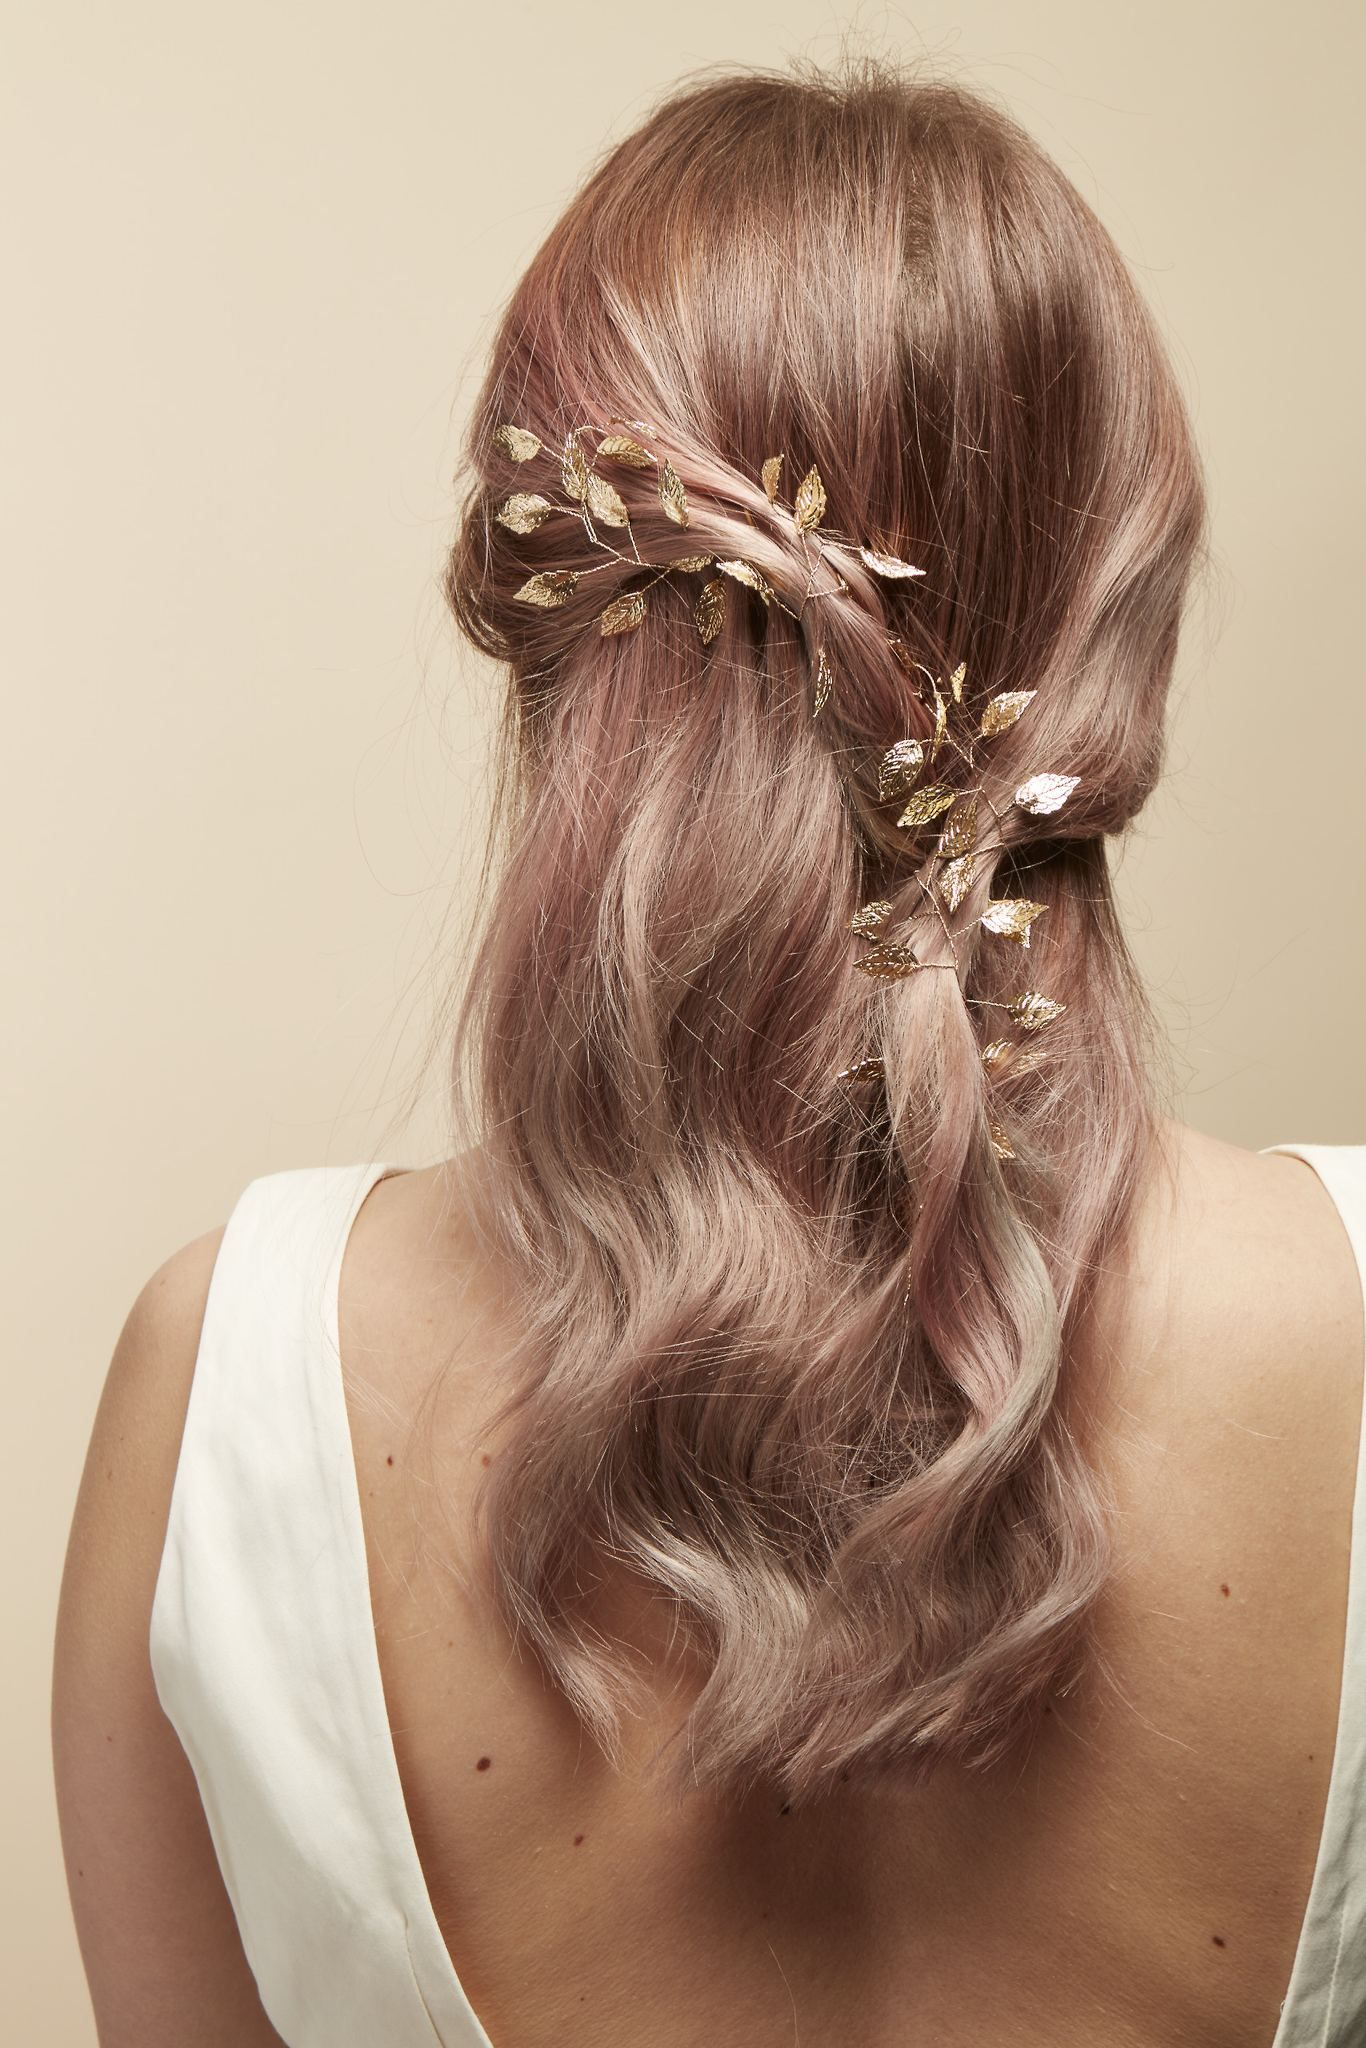 Wedding gold leaf hair accessory bridal hair accessories wedding